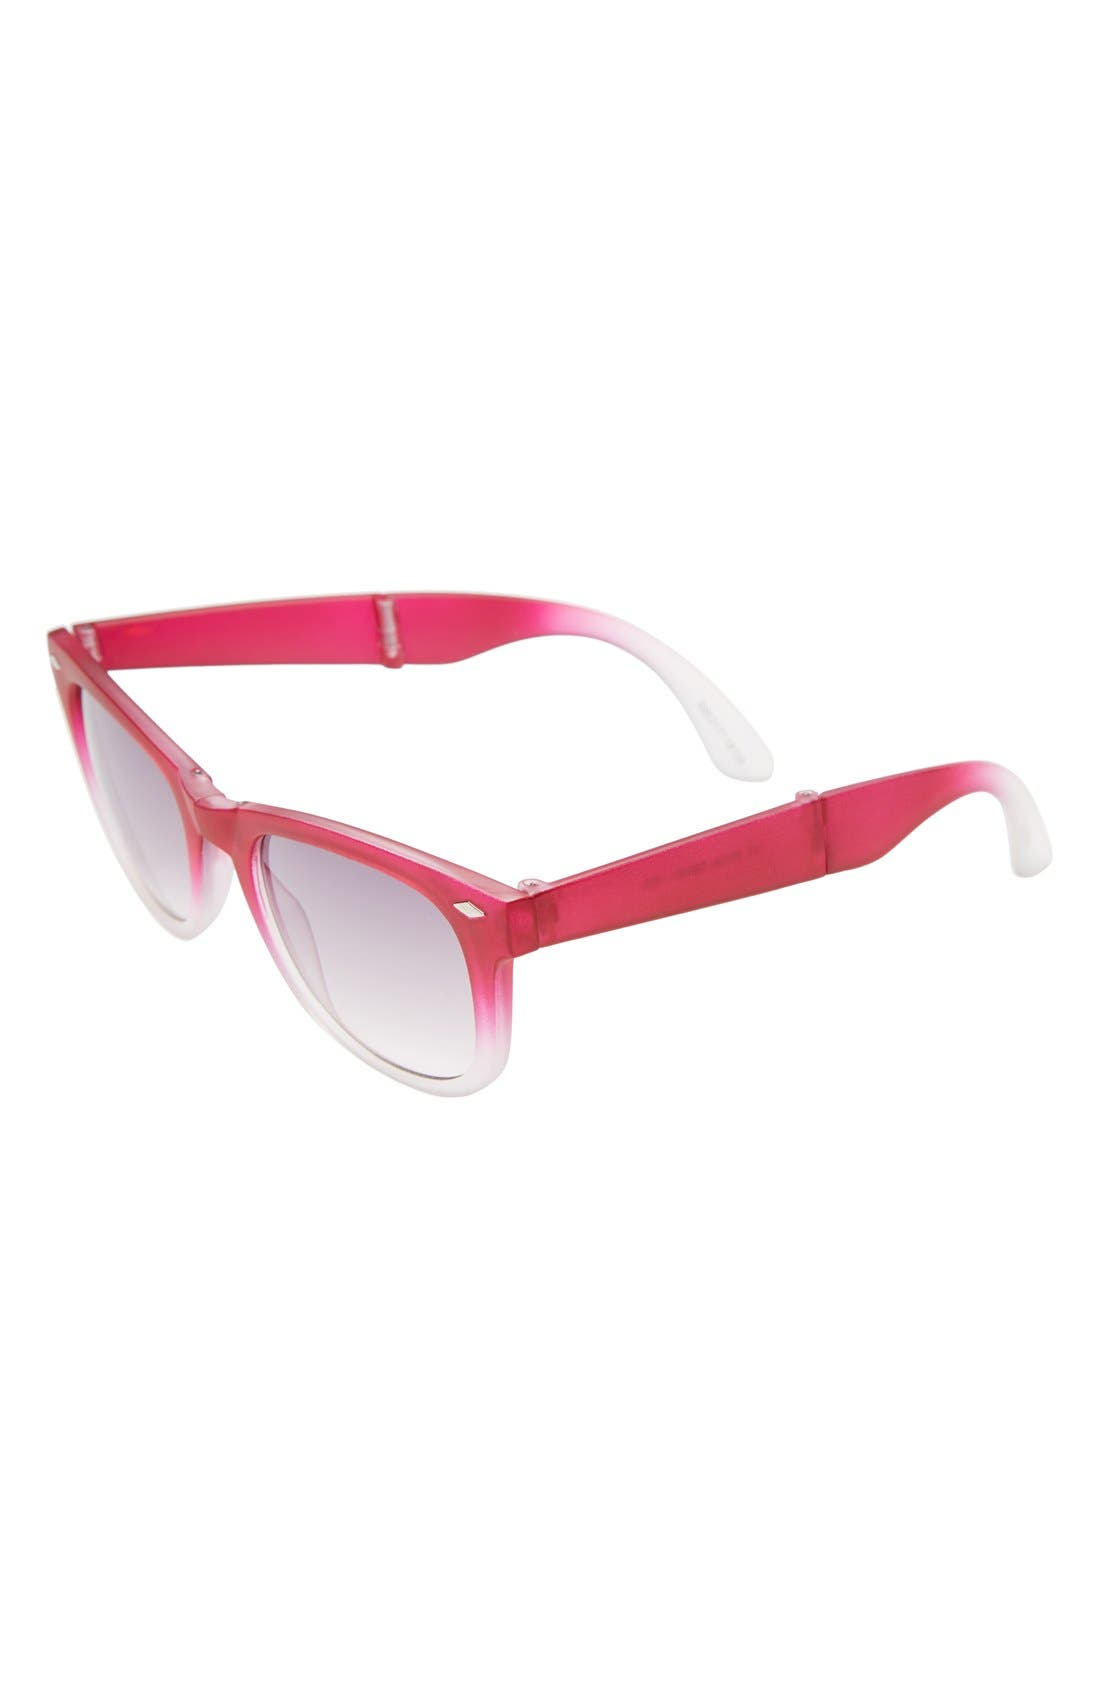 Alternate Image 1 Selected - Icon Eyewear 75mm Foldable Sunglasses (Girls)